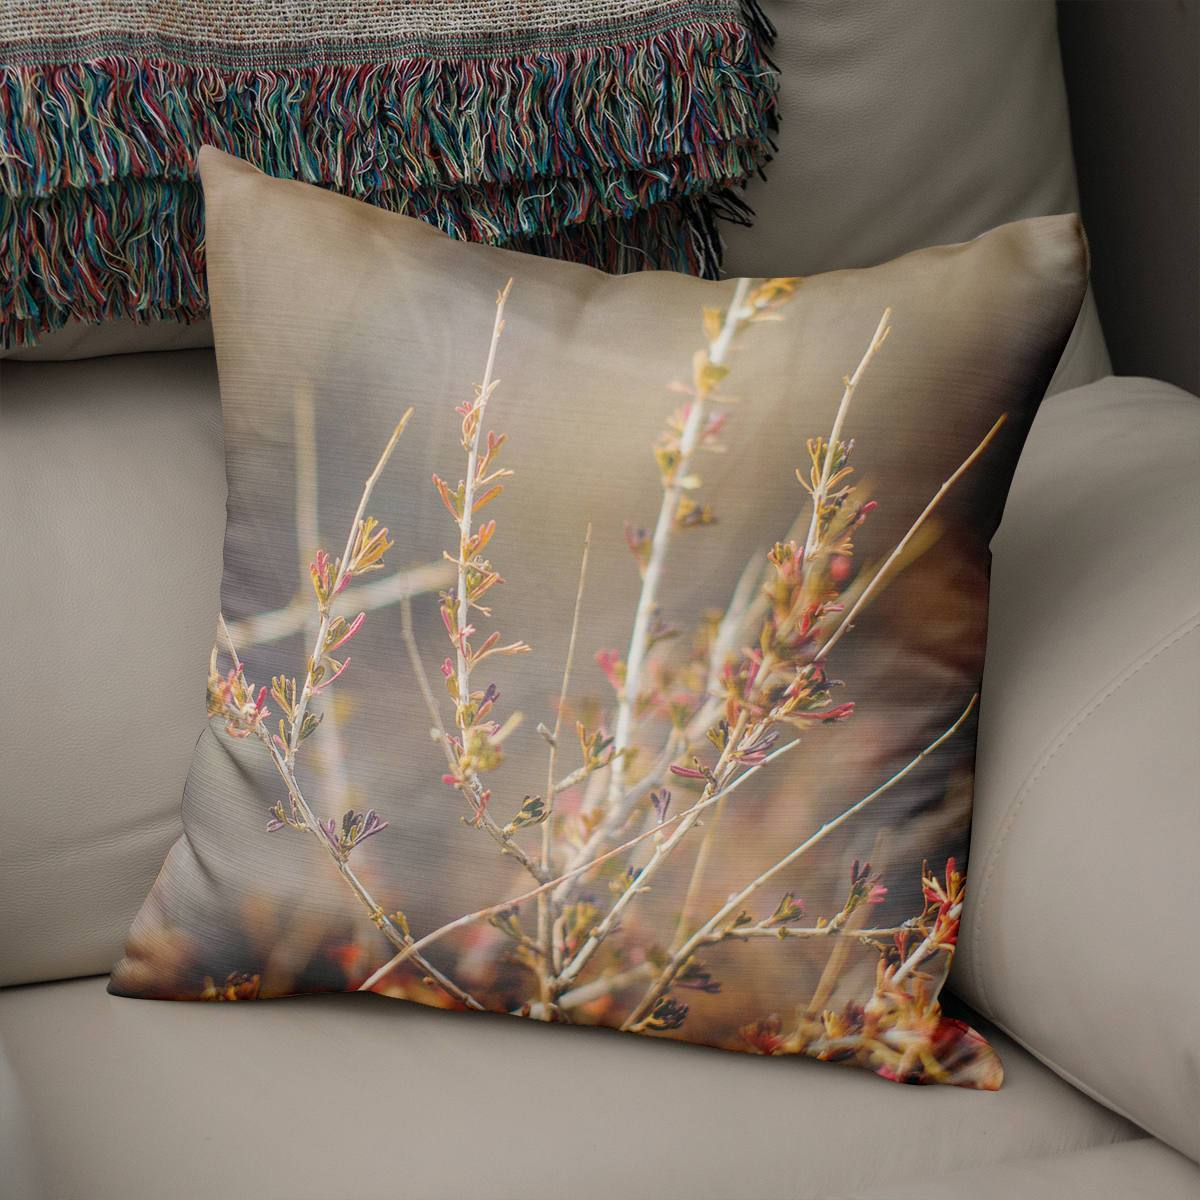 Delicate Flowers Pink and Purple Throw Pillow Cover Lost in Nature